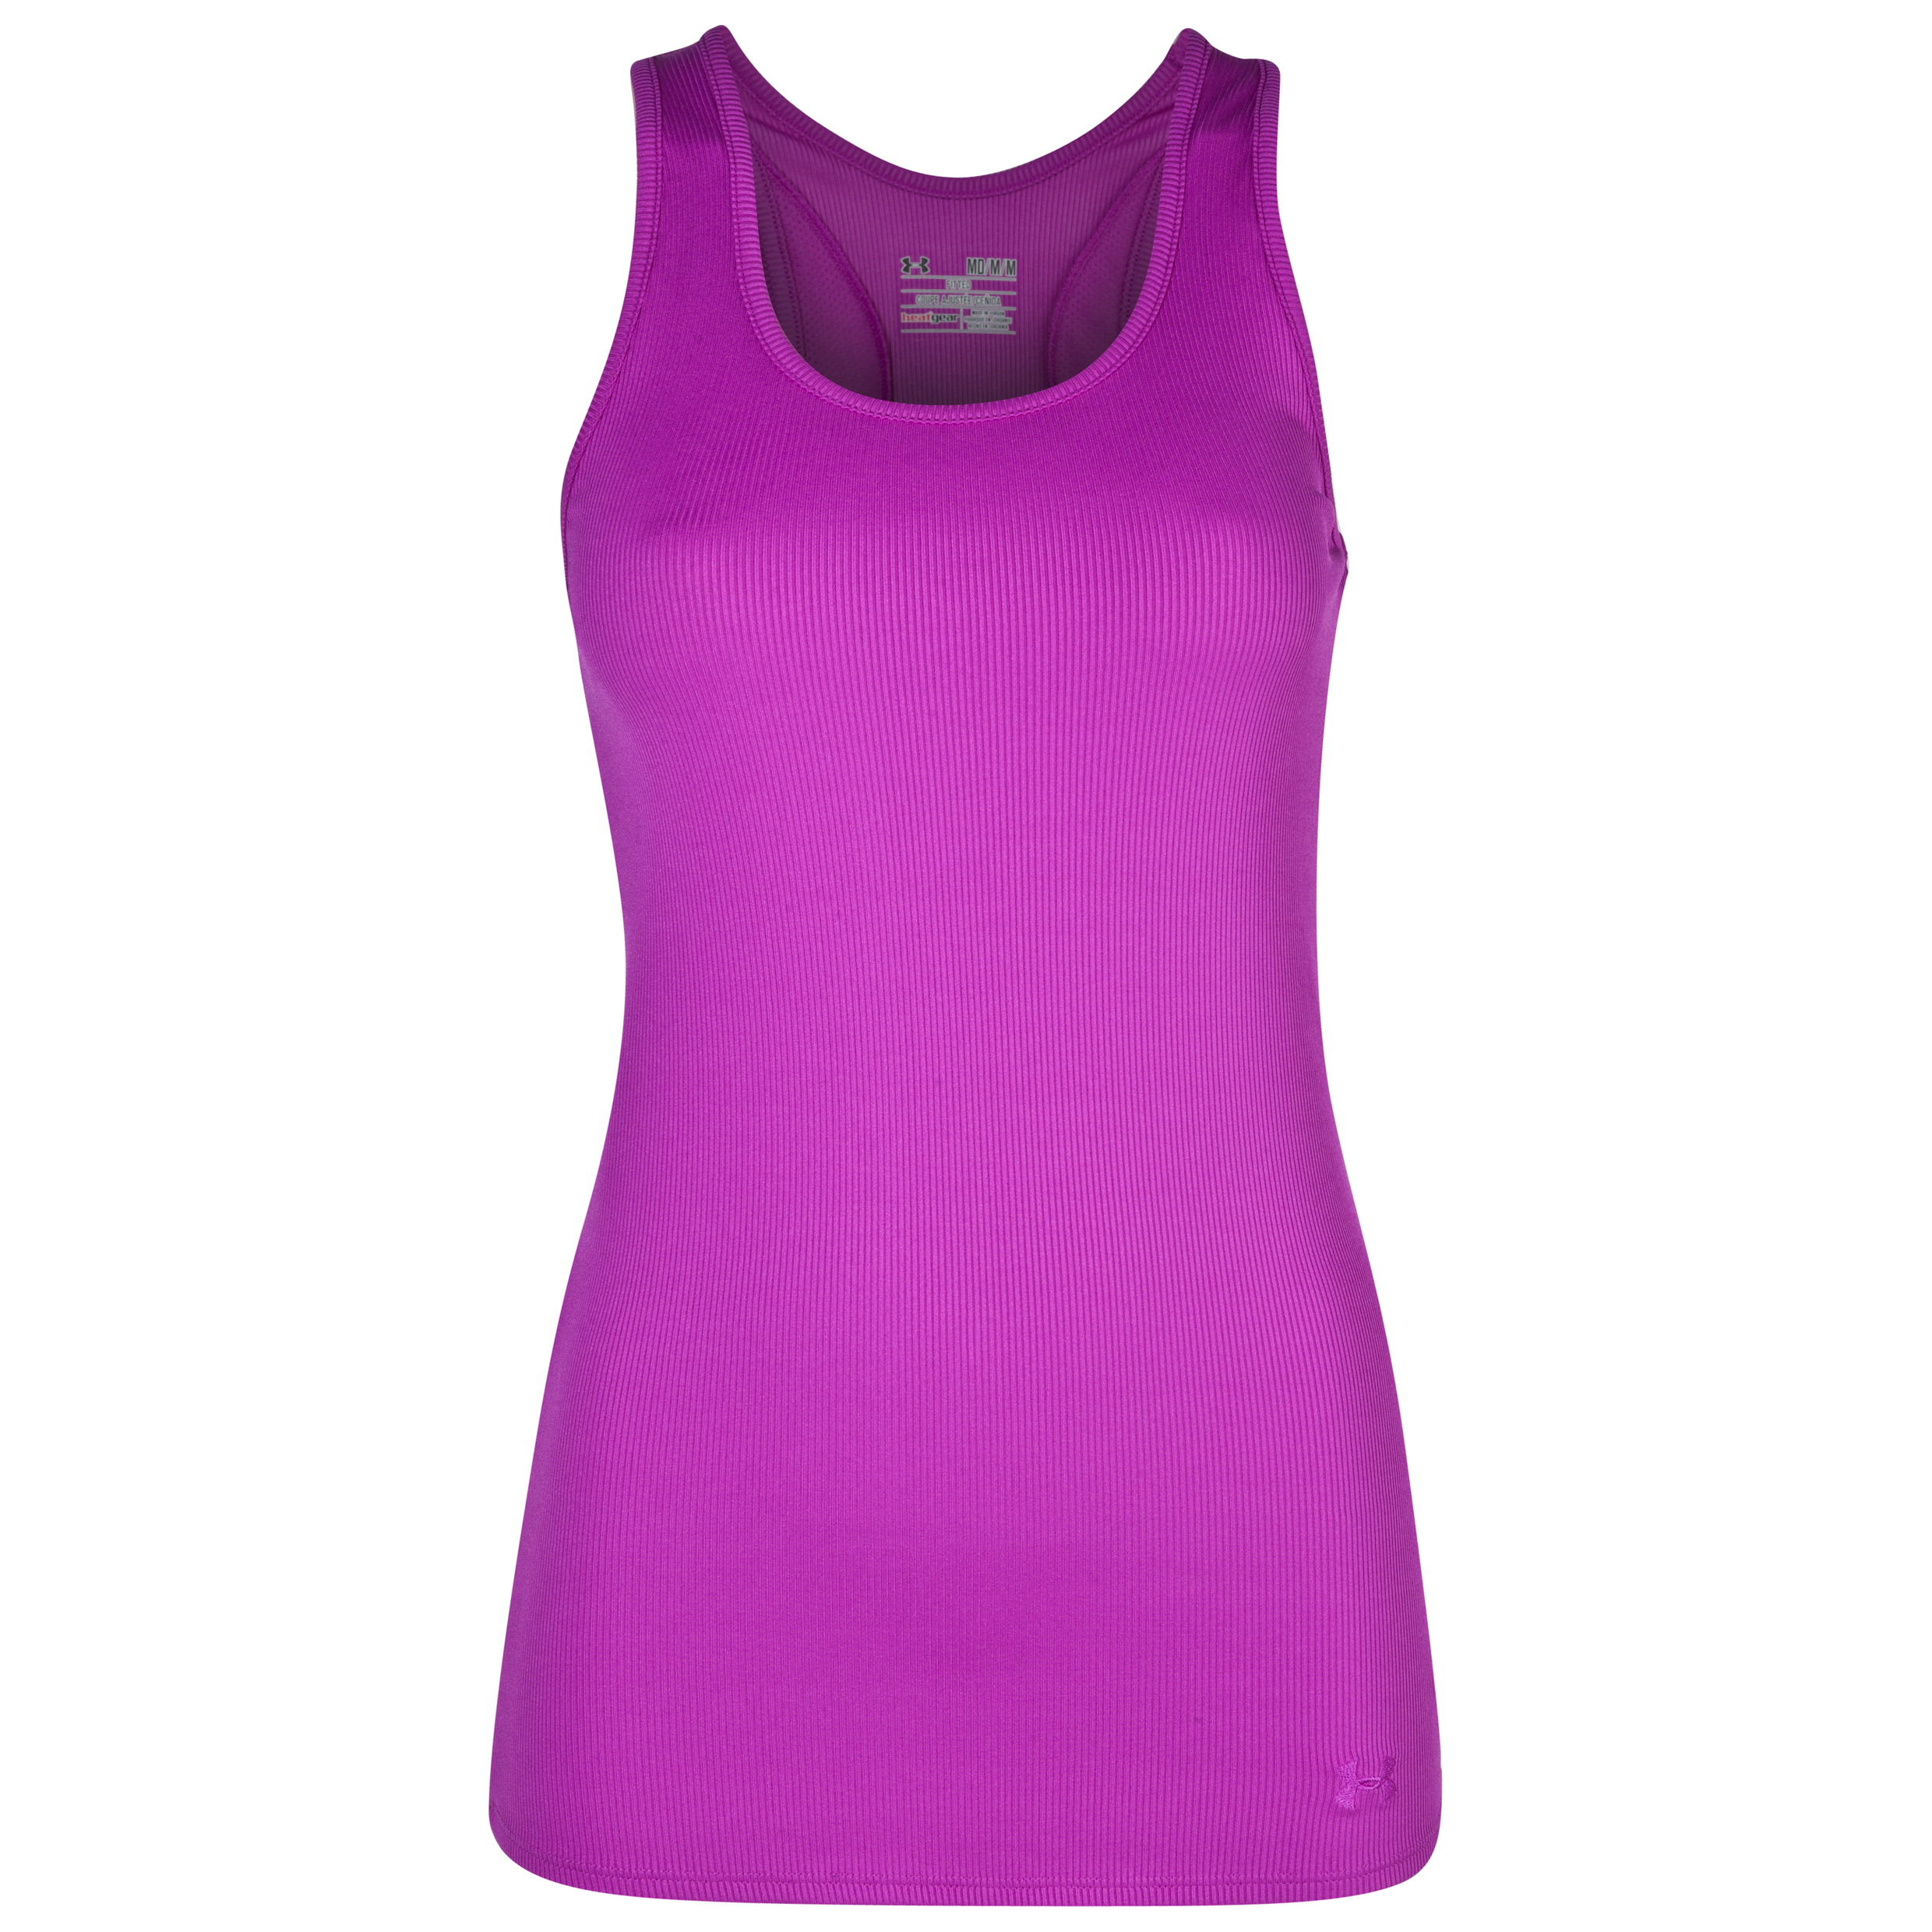 Lifestyle Under Armour Victory Tank - Purple - Womens Purple